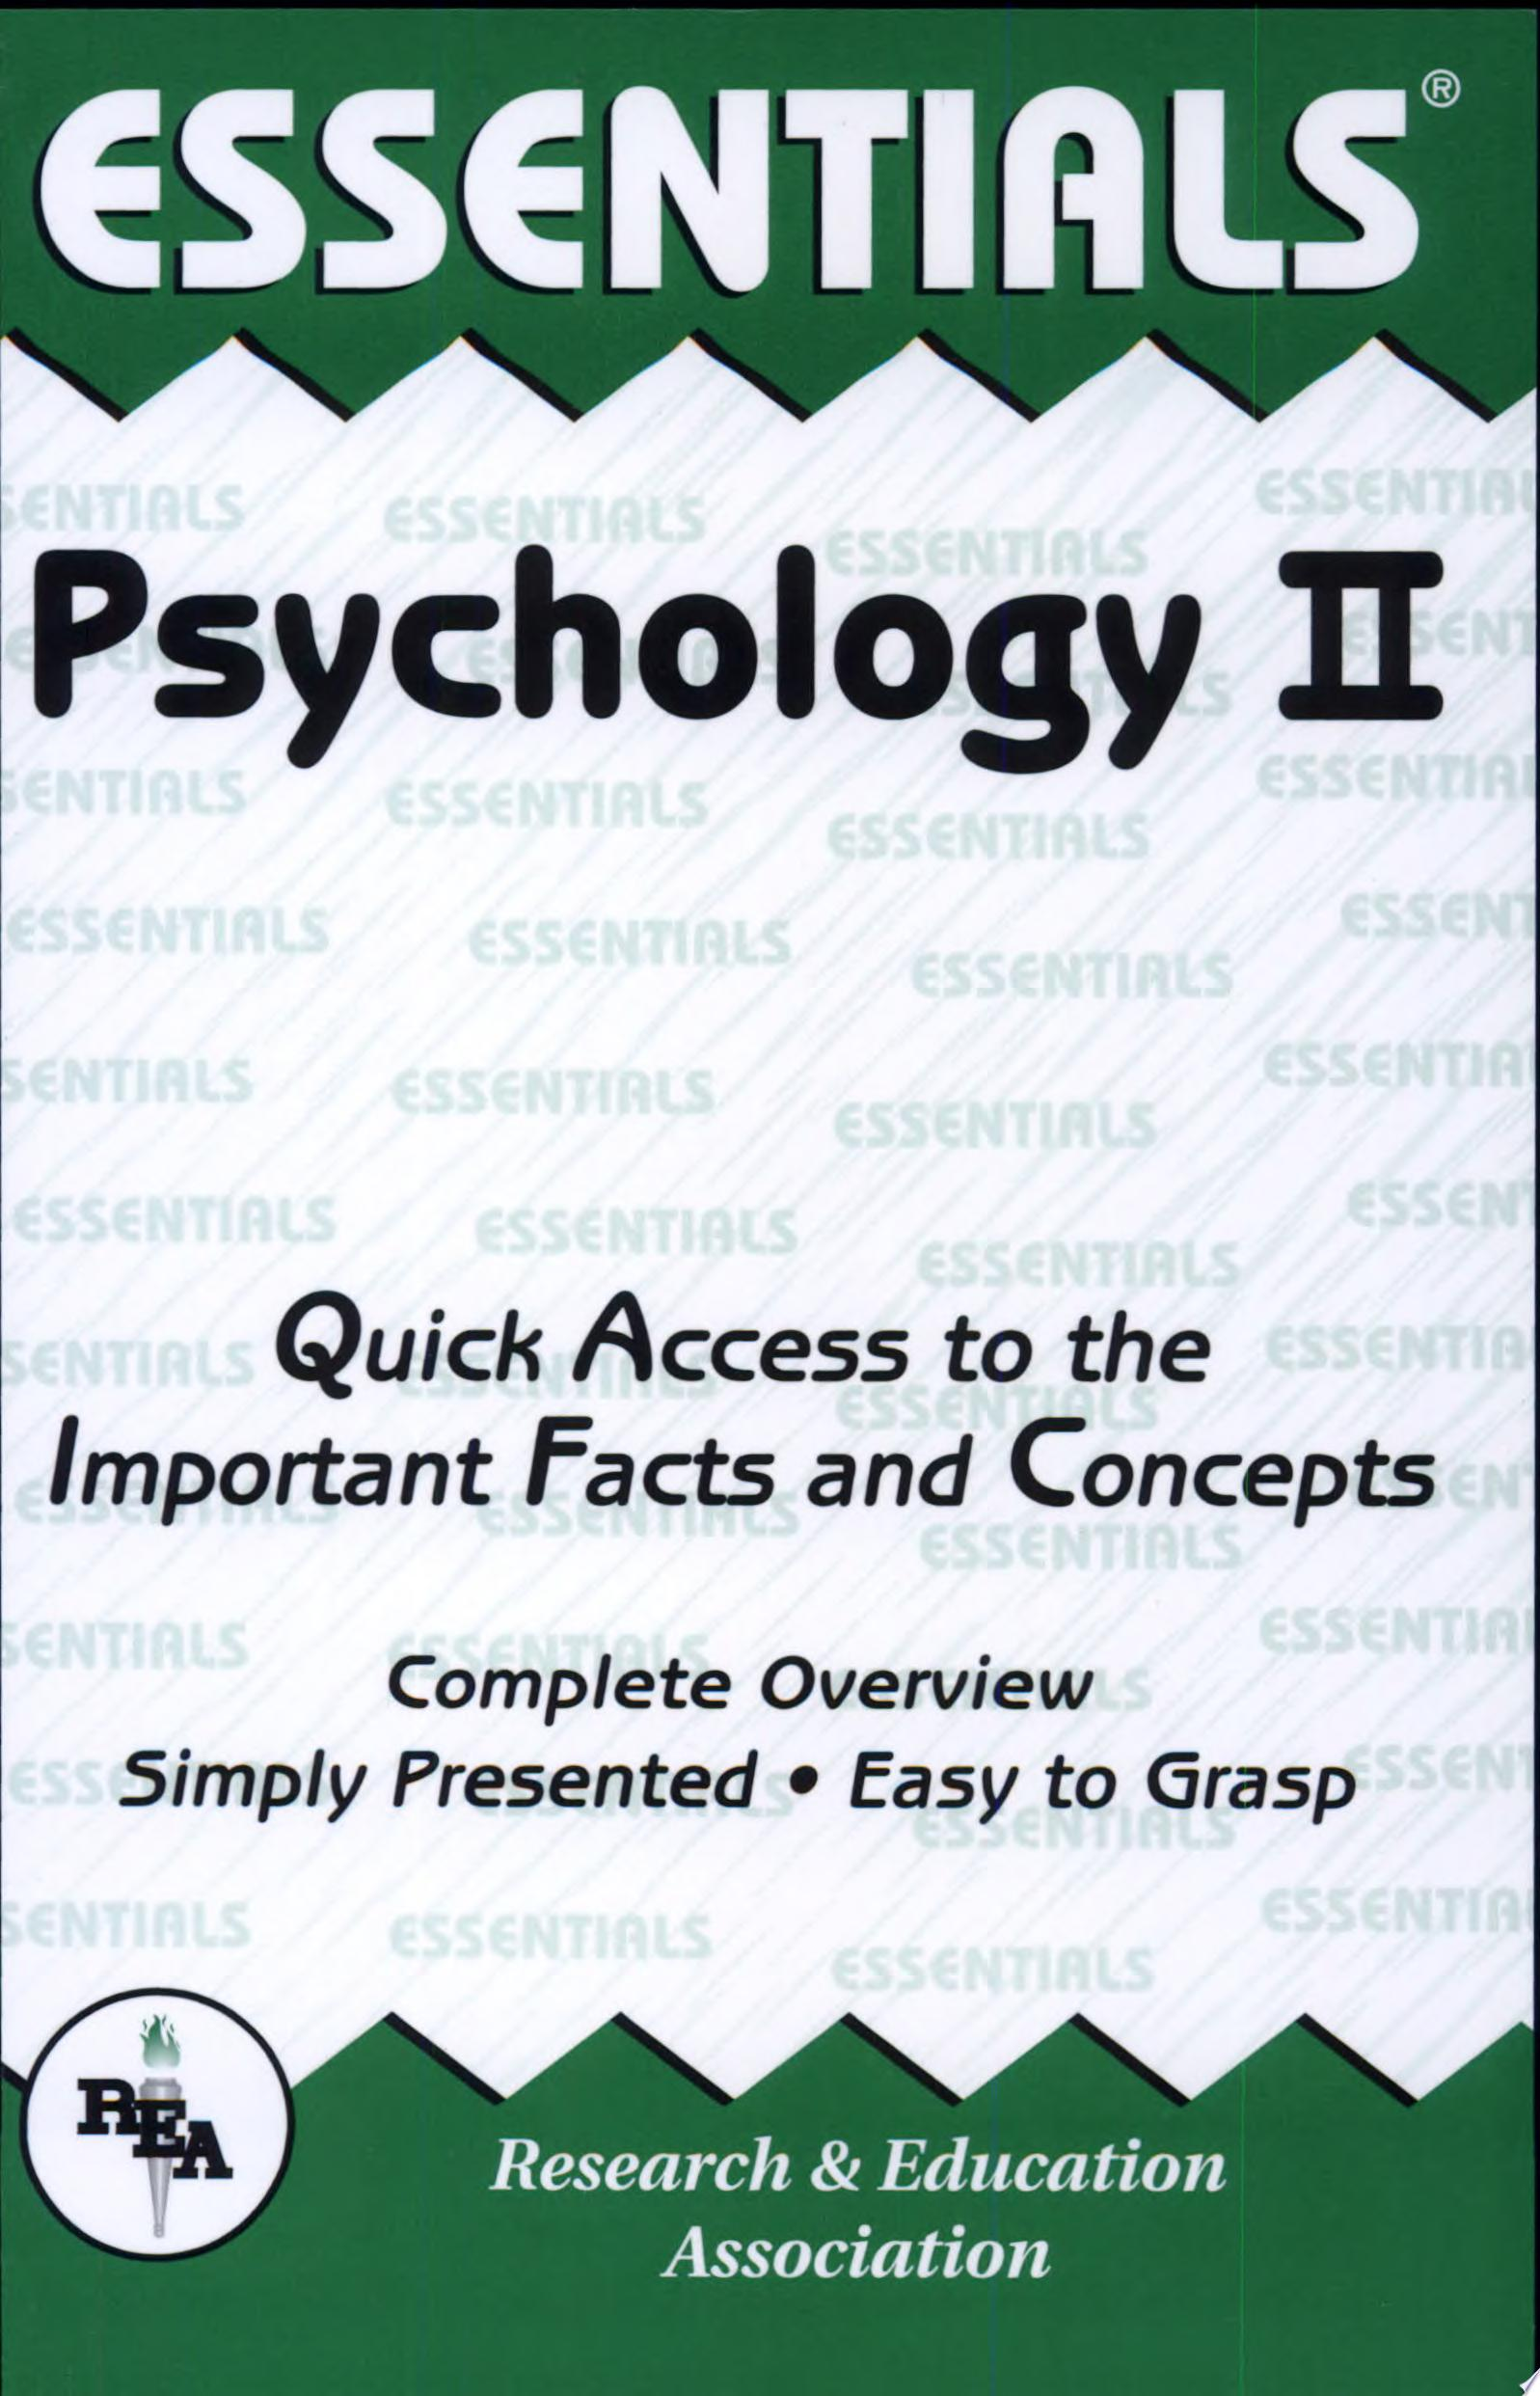 Psychology II Essentials